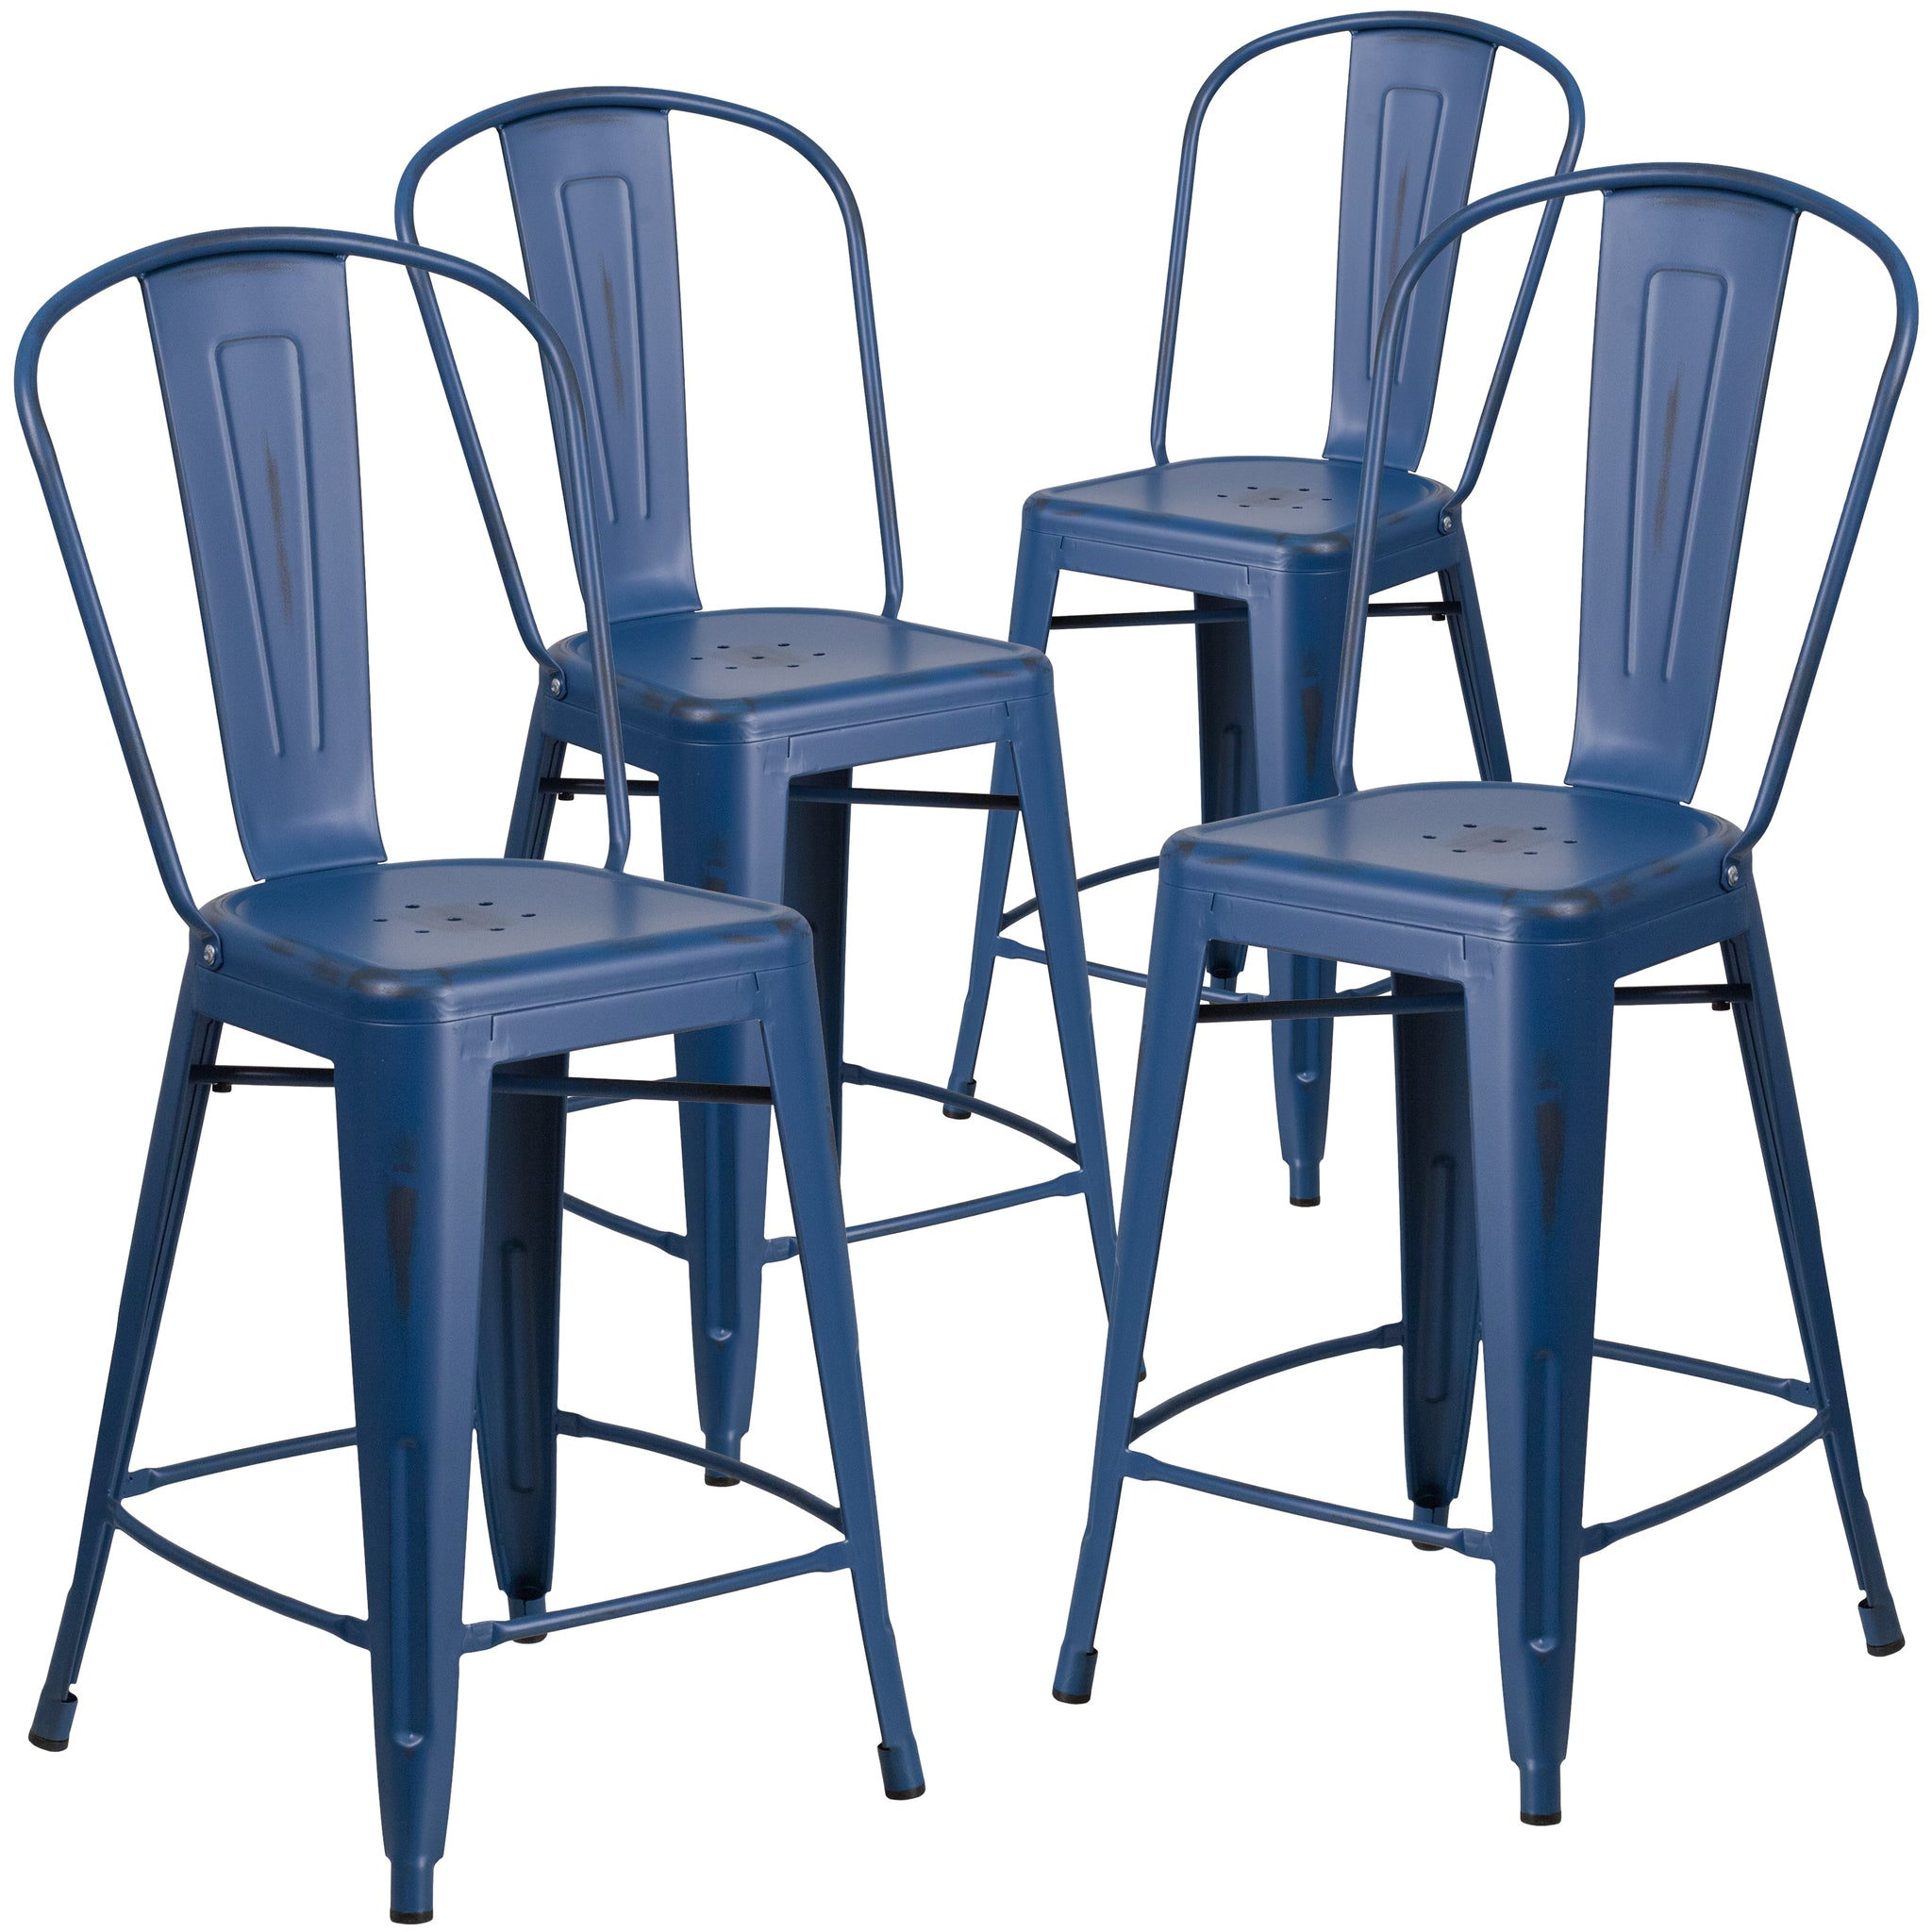 4 Pk. 24'' High Distressed Metal Indoor-Outdoor Counter Height Stool with Back: Antique Blue